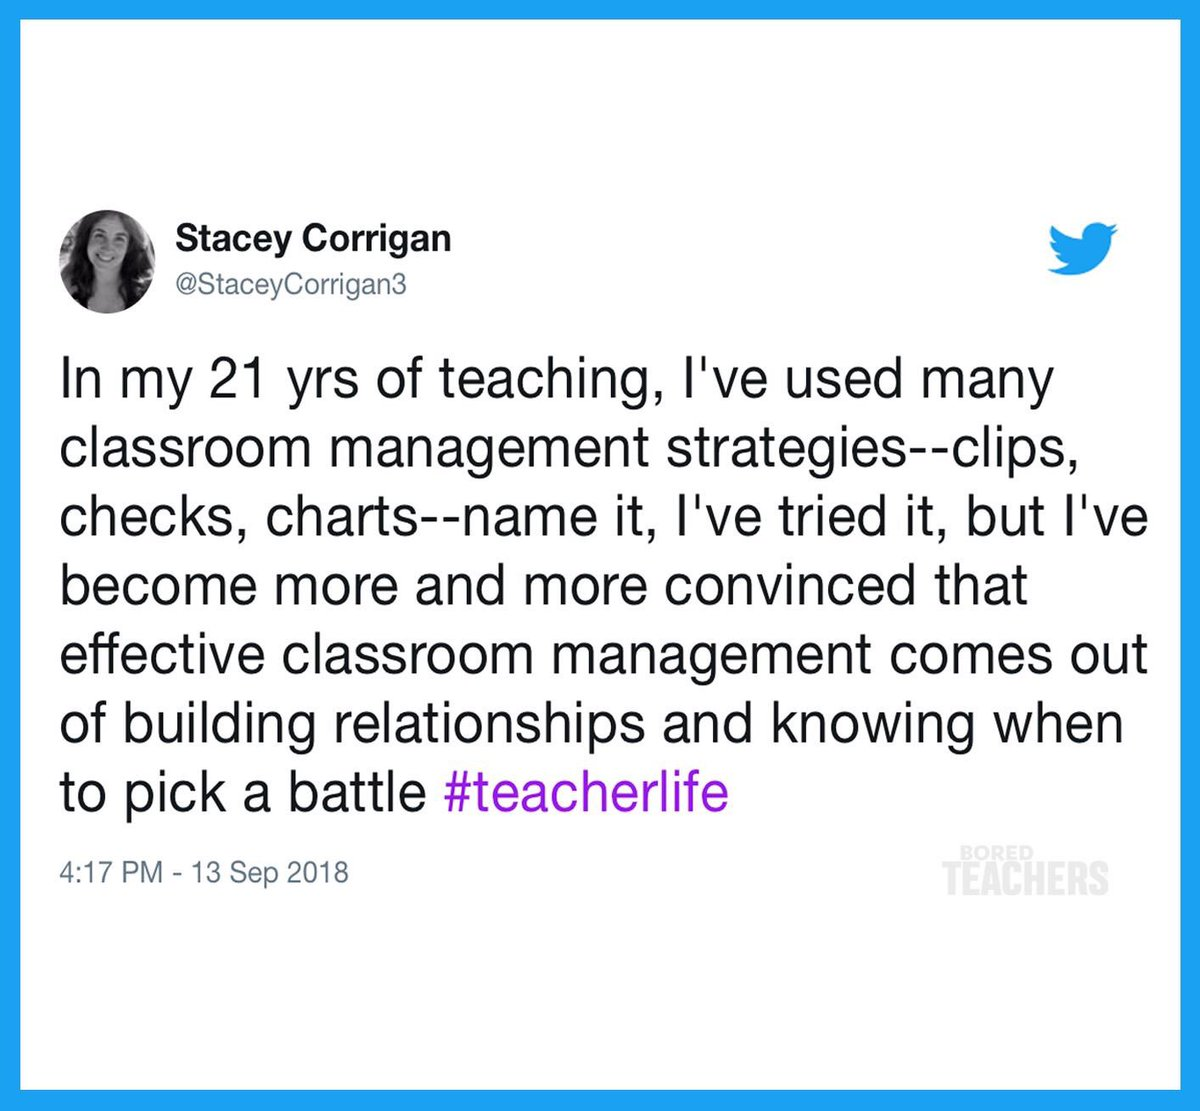 This! #relationshipsmatter!